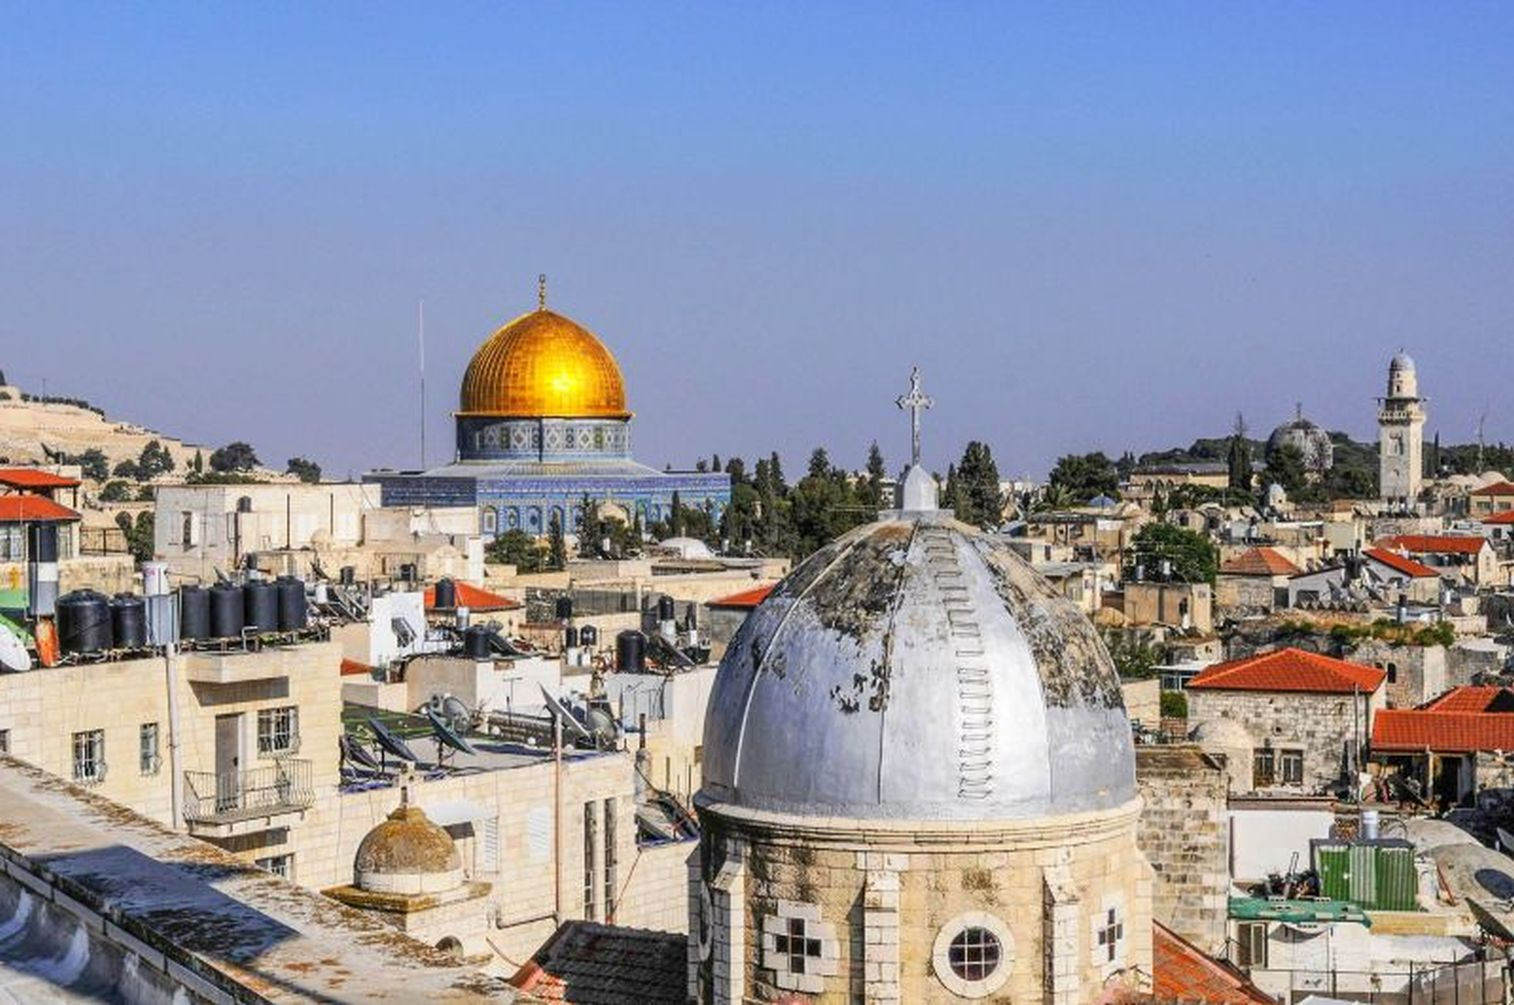 View of Dome of the Rock from Austrian Hospice, photo by Mike Keenan